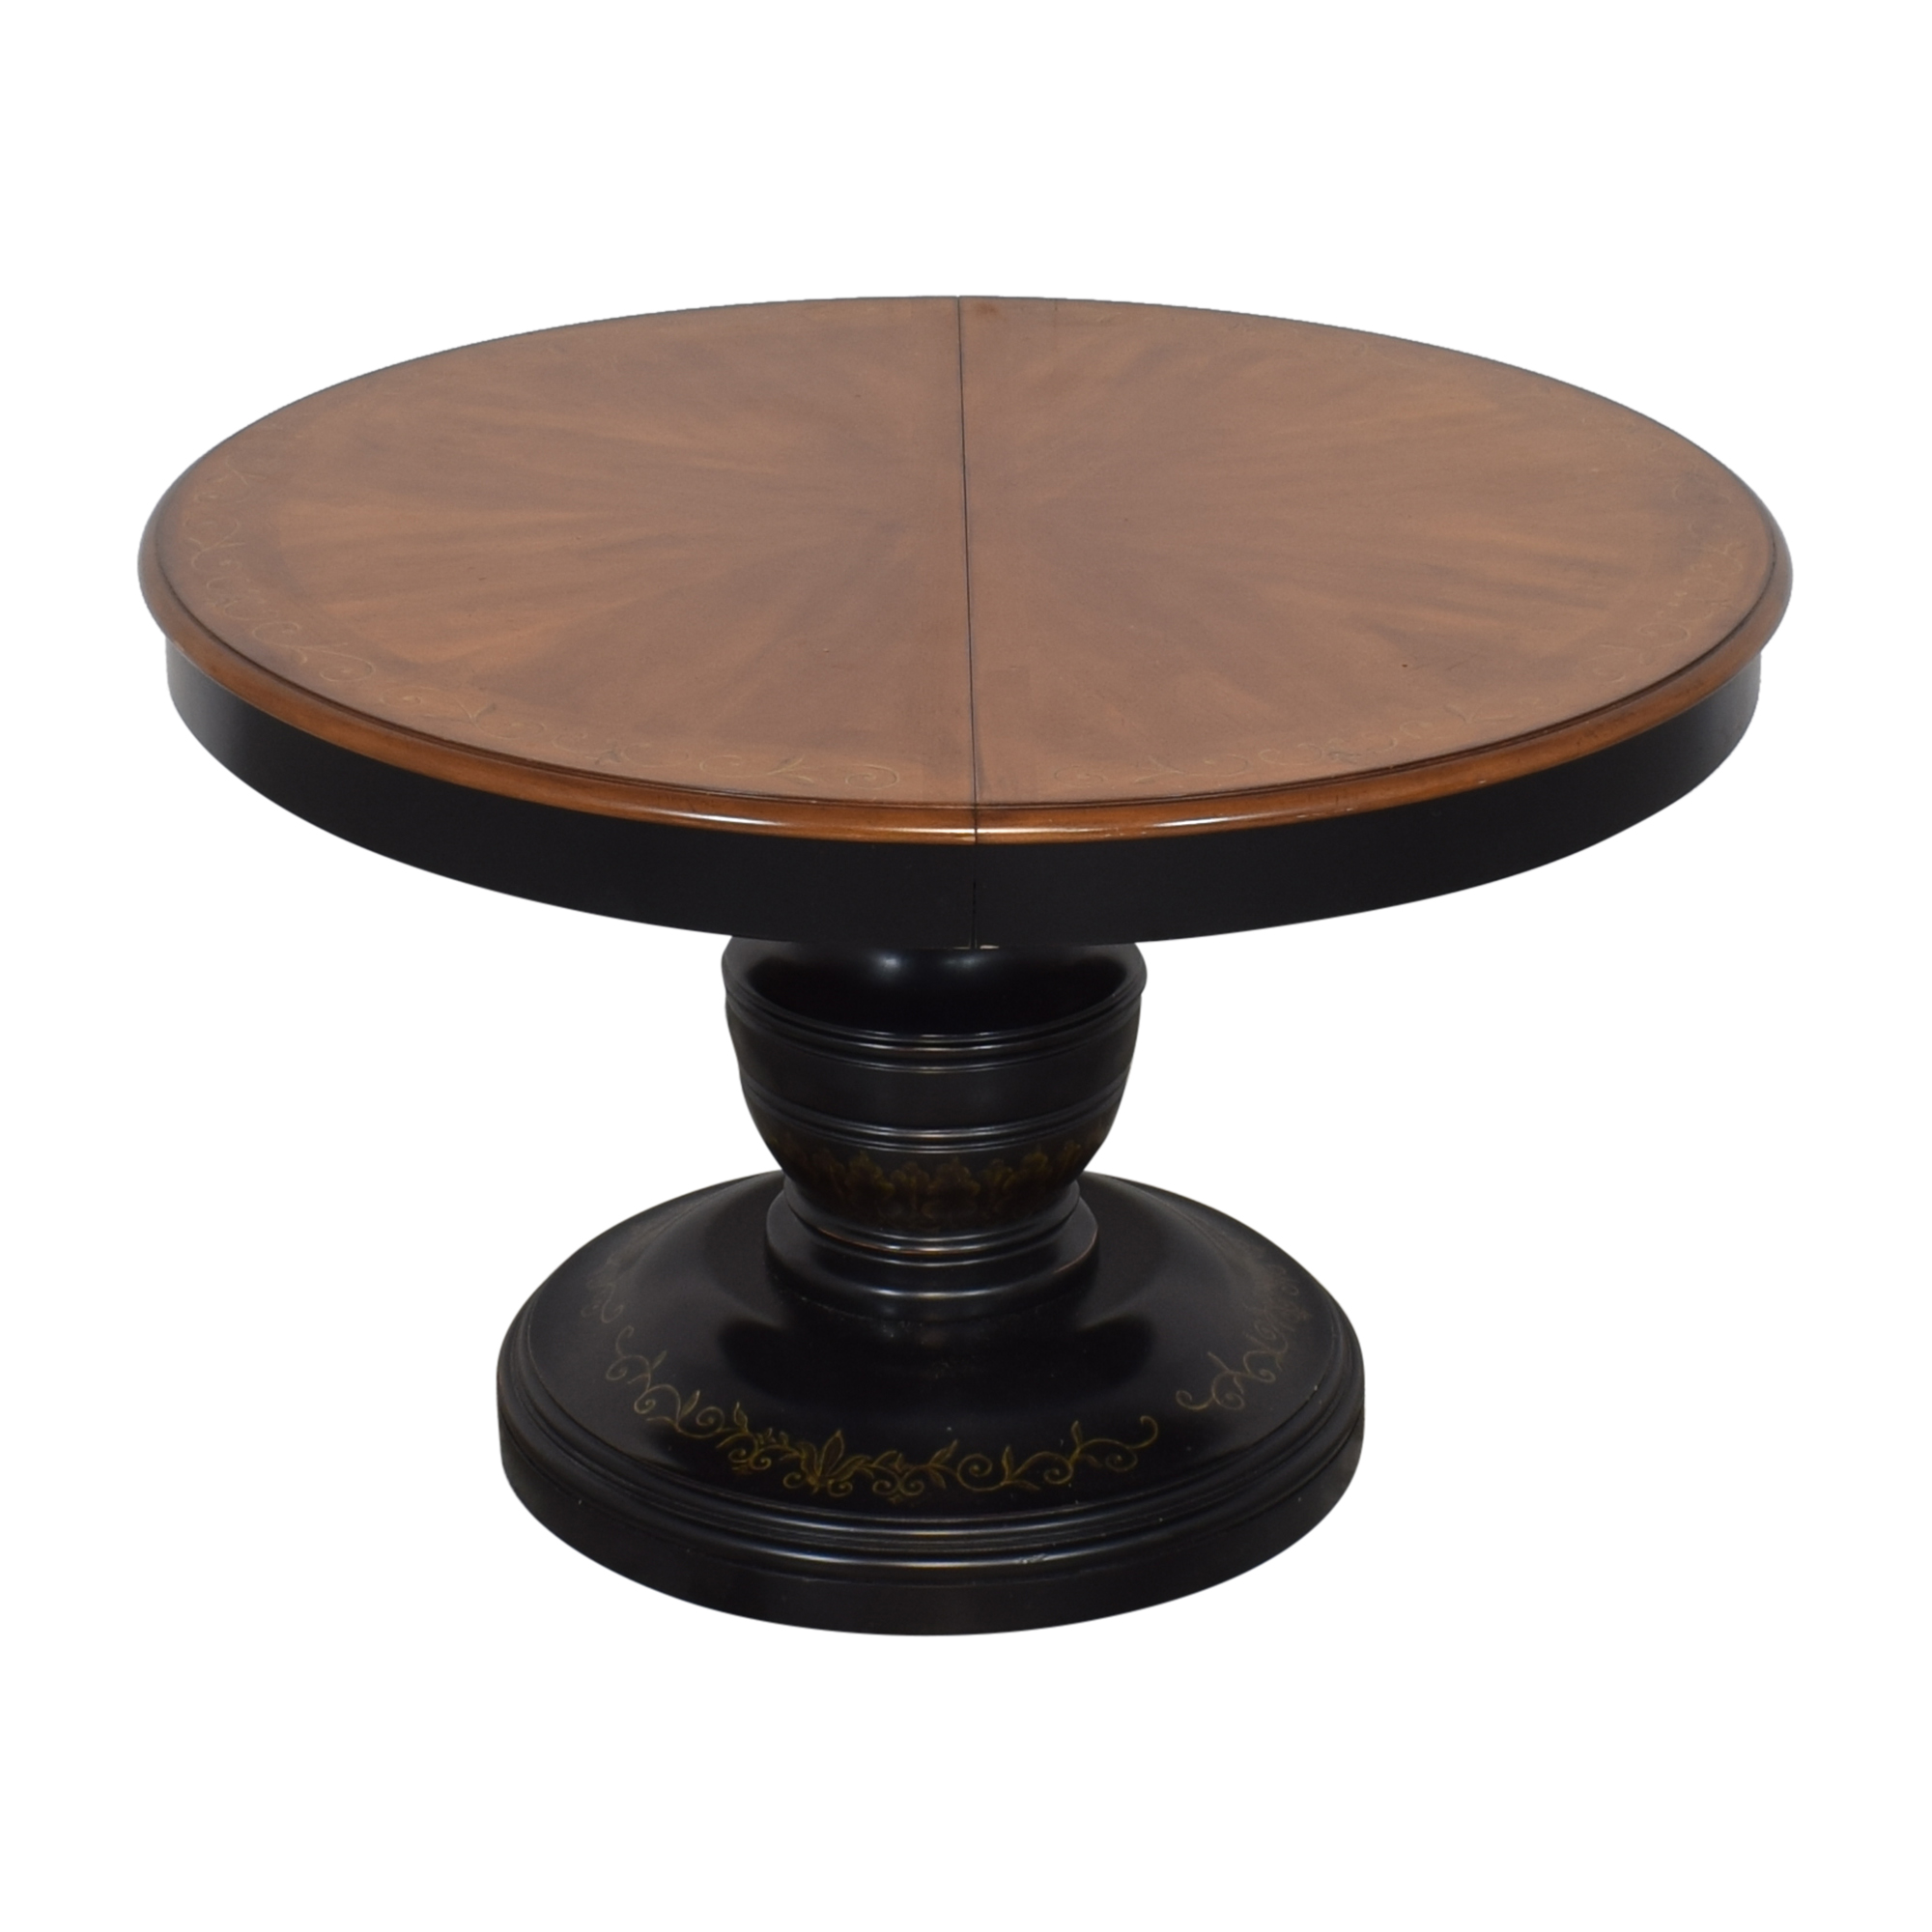 A.R.T. Furniture A.R.T. Furniture Extendable Oval Dining Table discount